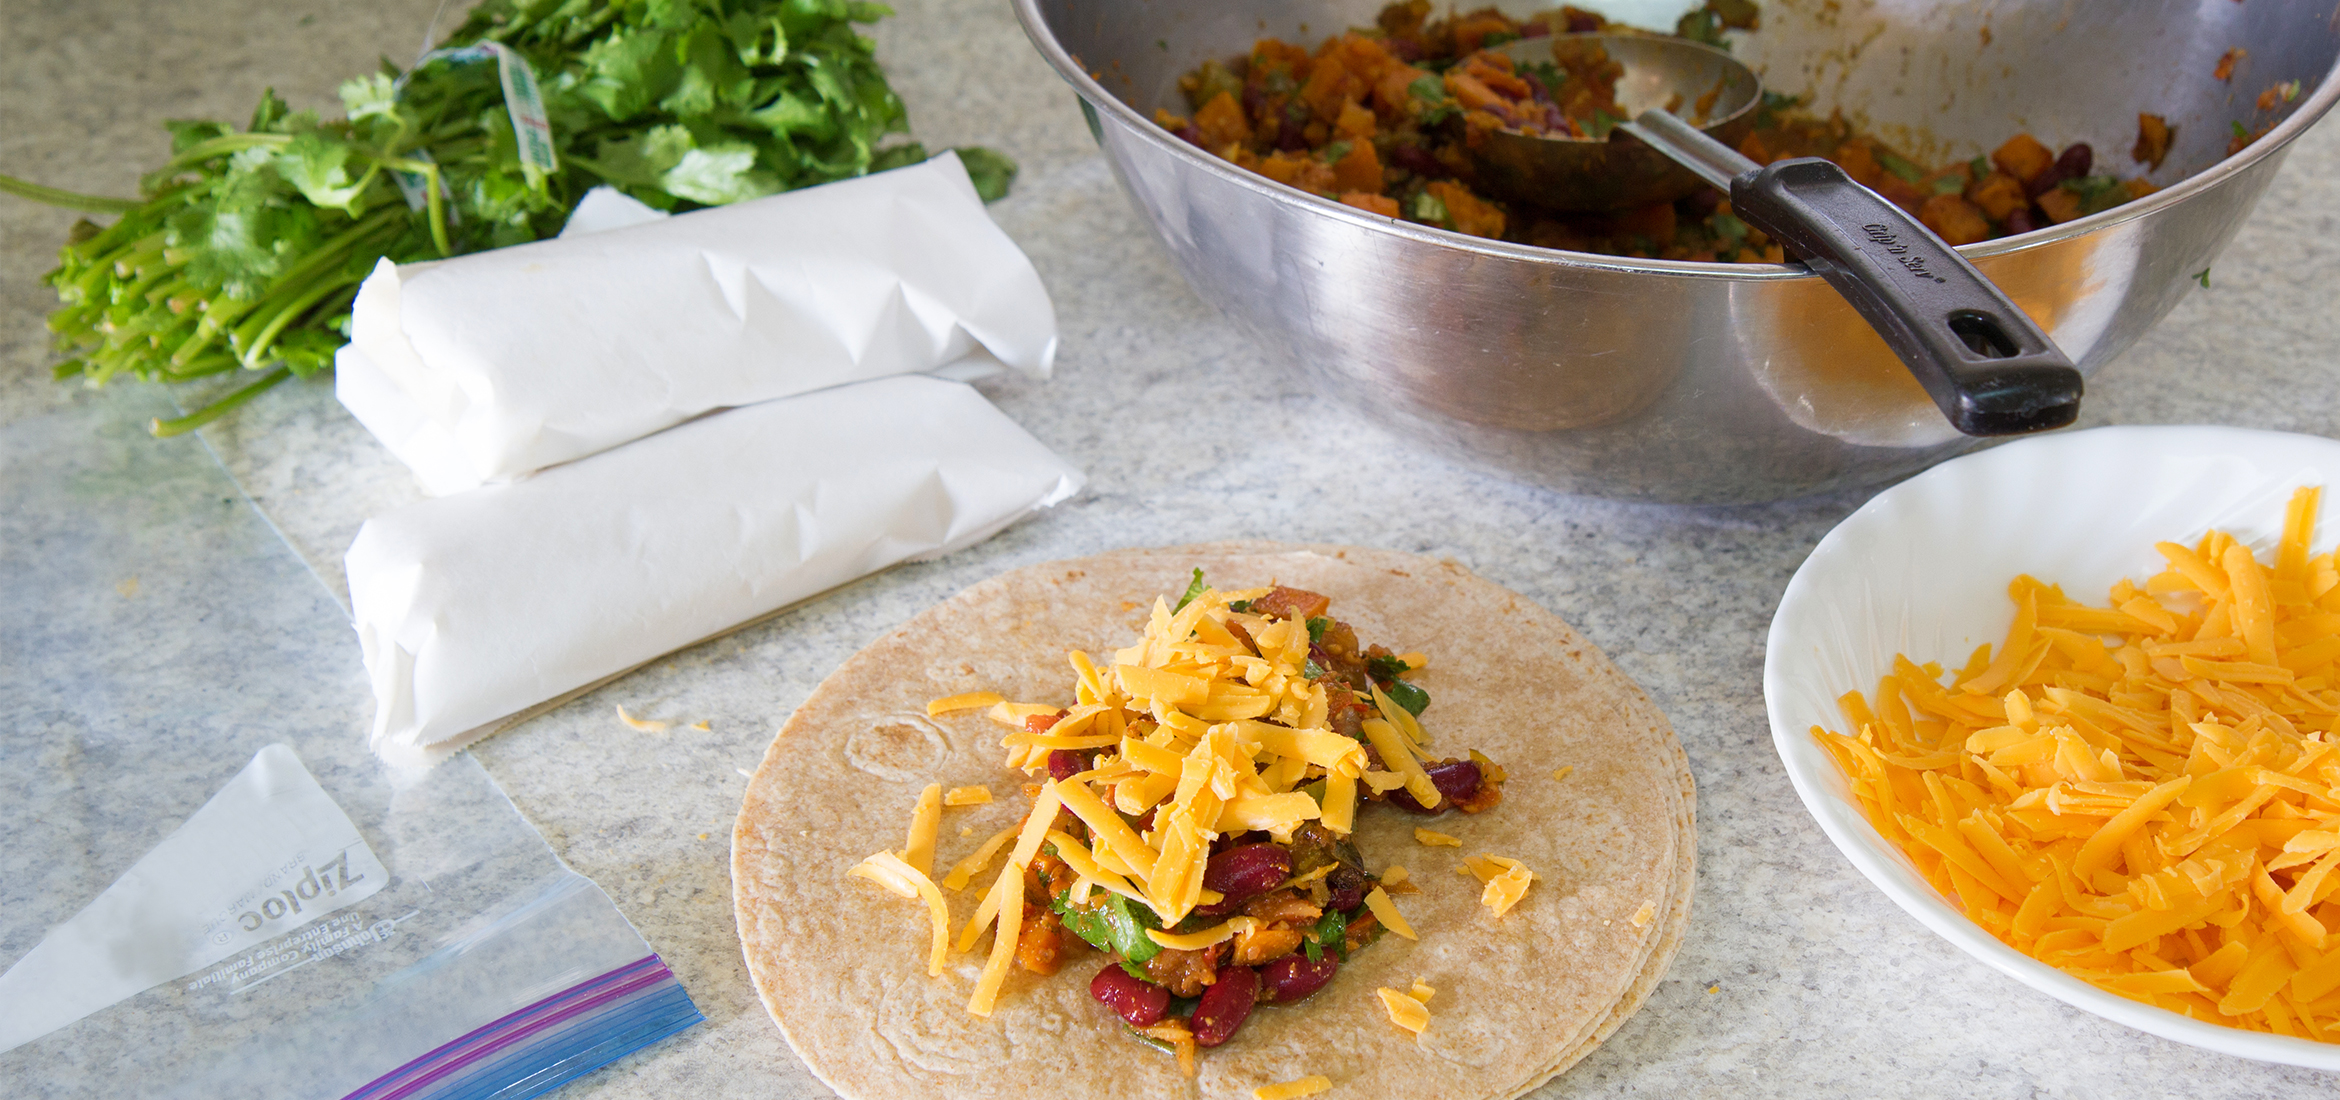 Freezer-Friendly Veggie Burritos